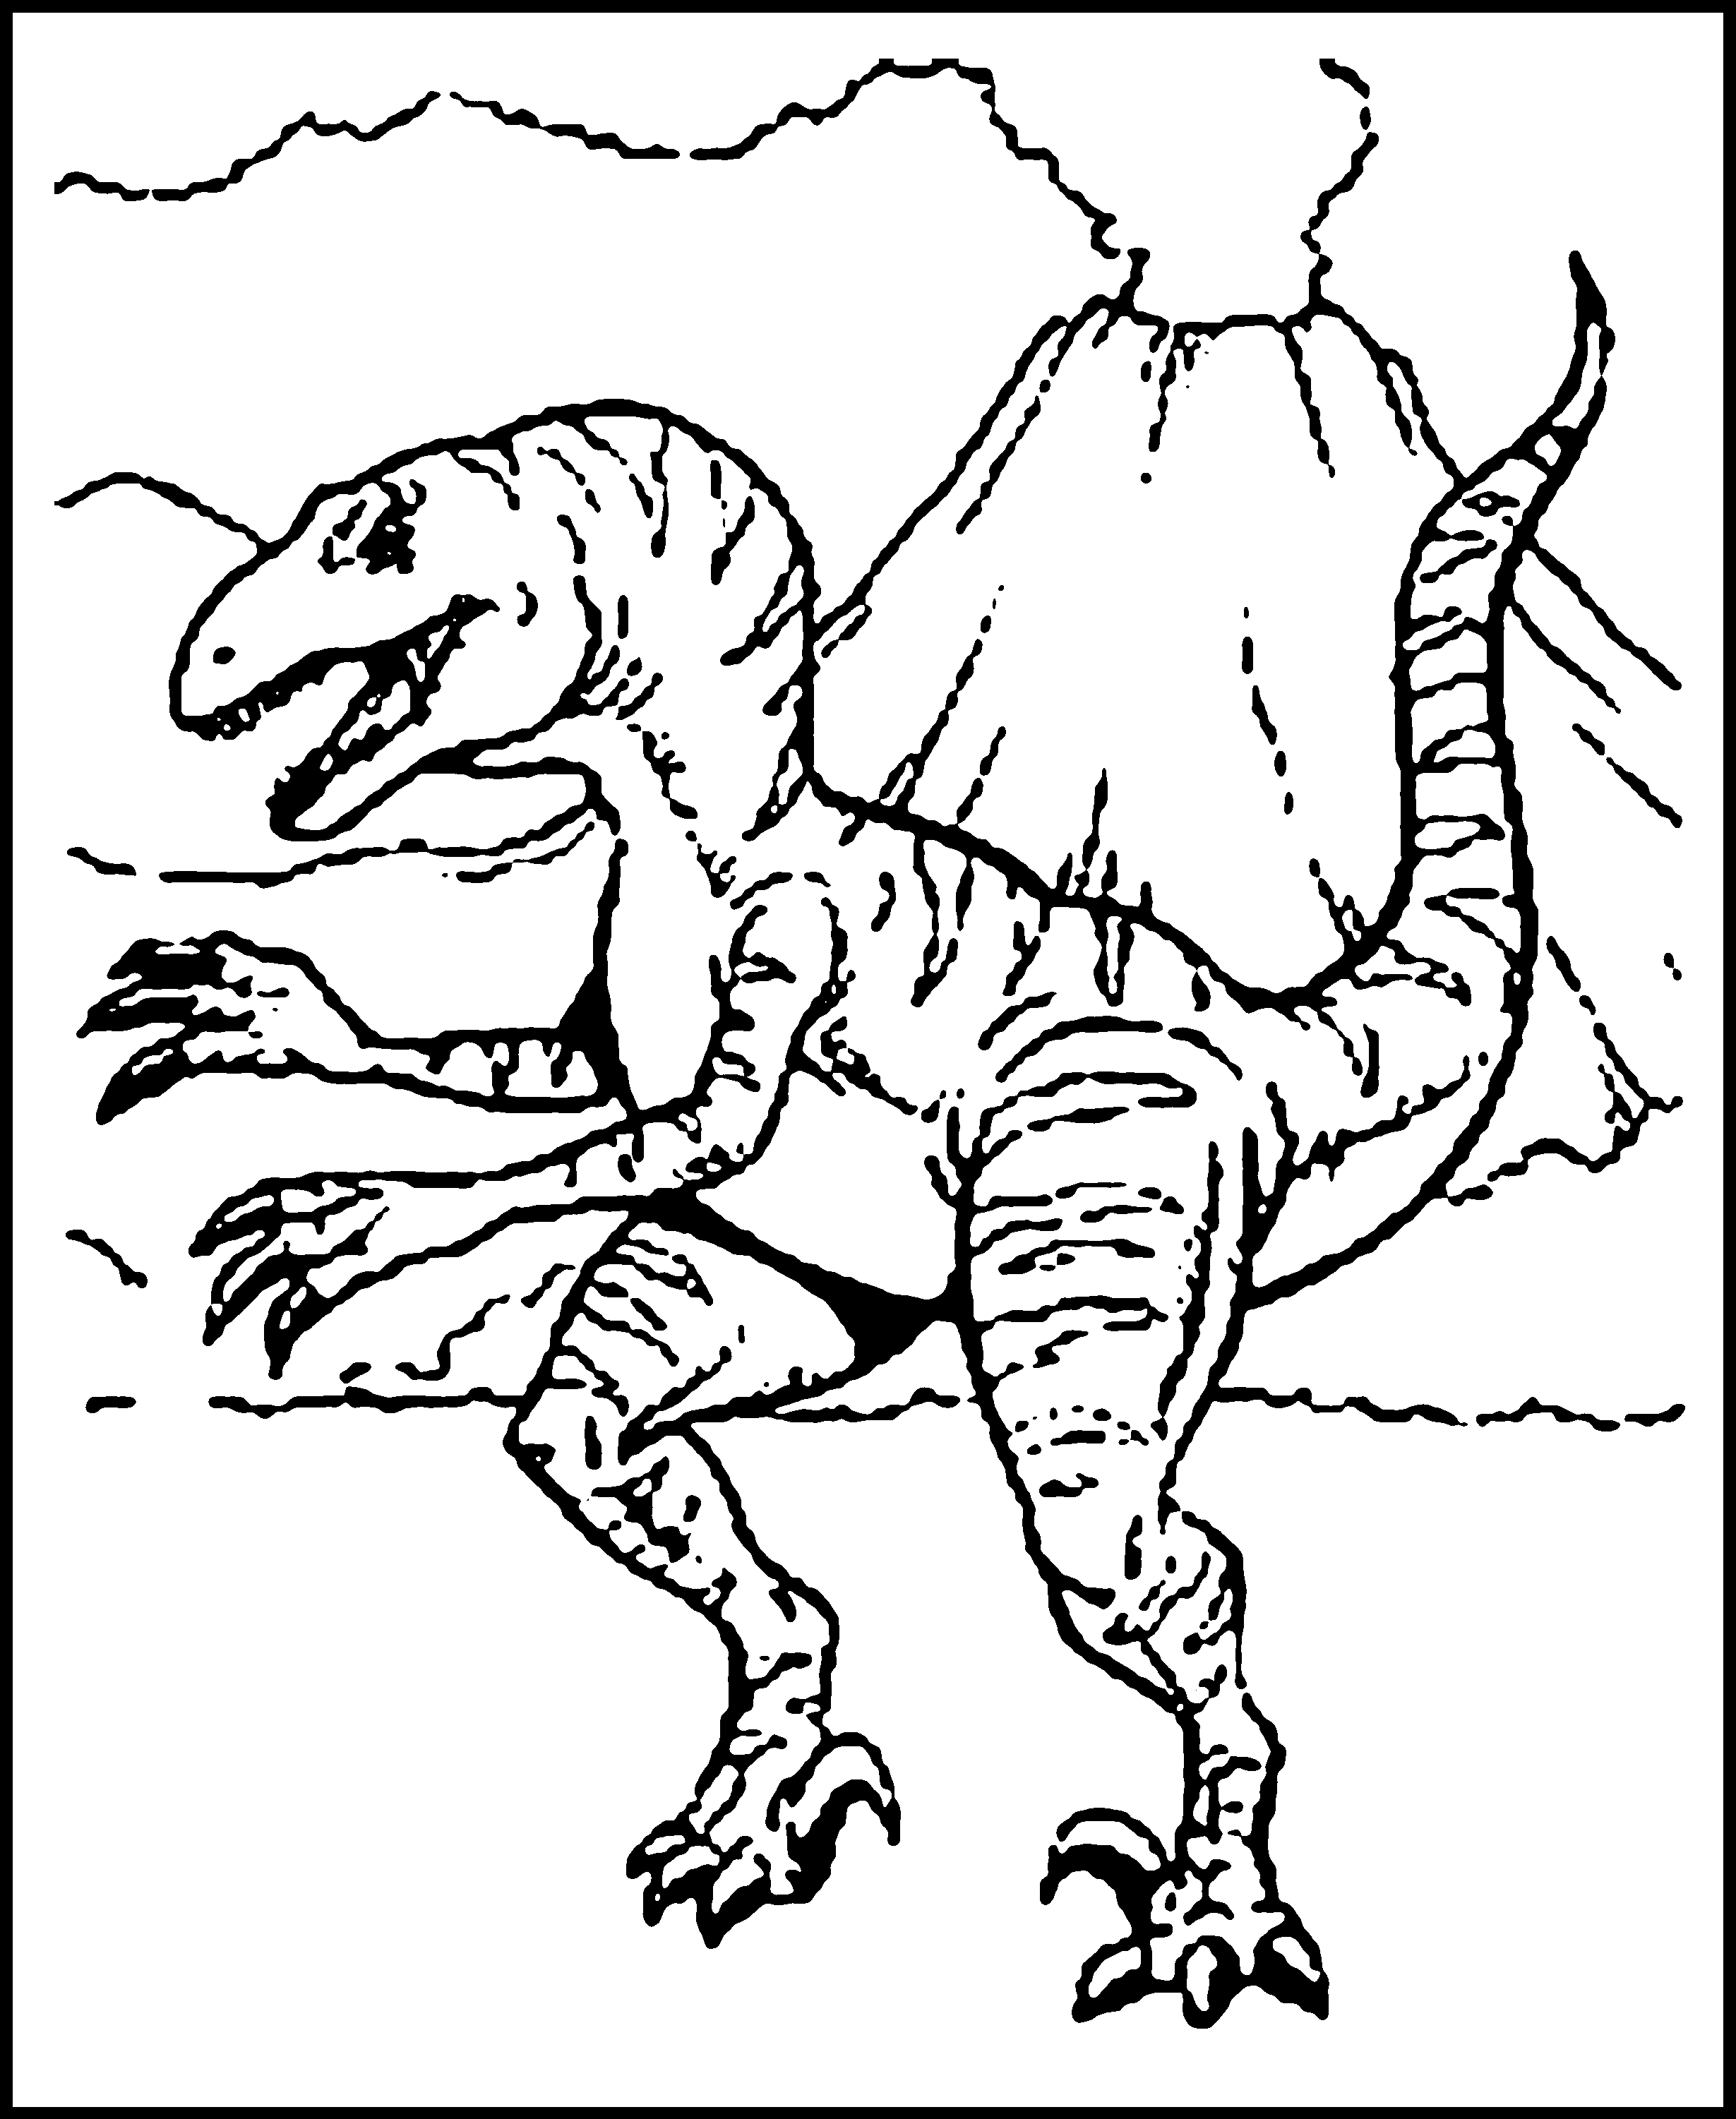 dinossaur coloring pages - photo#36